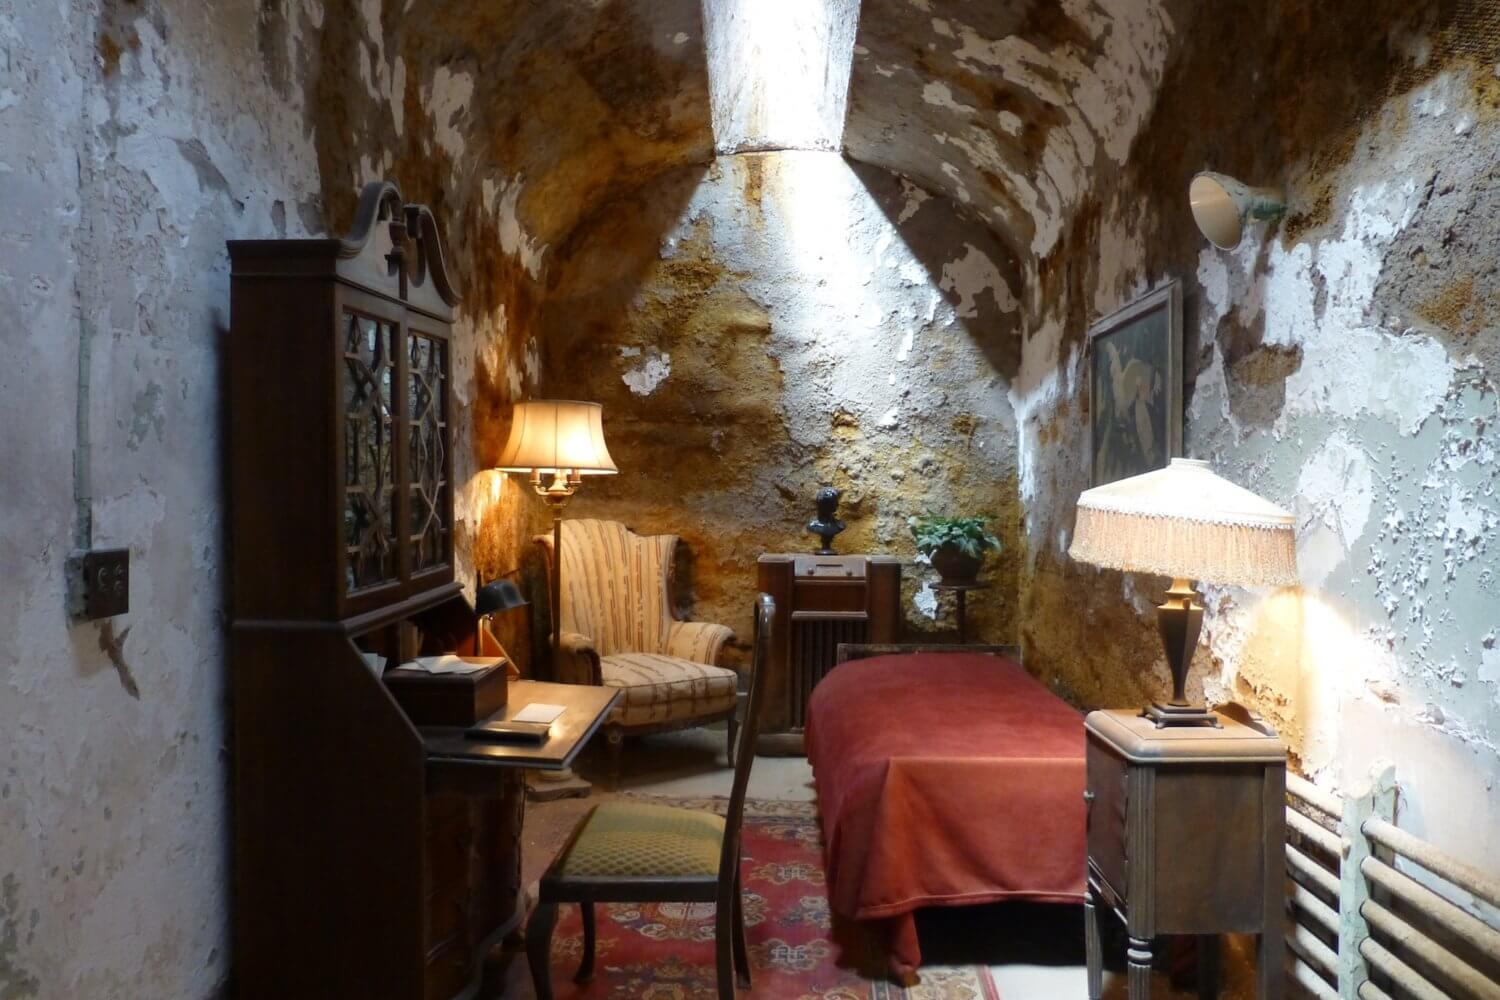 al Capone cell eastern state penitentiary